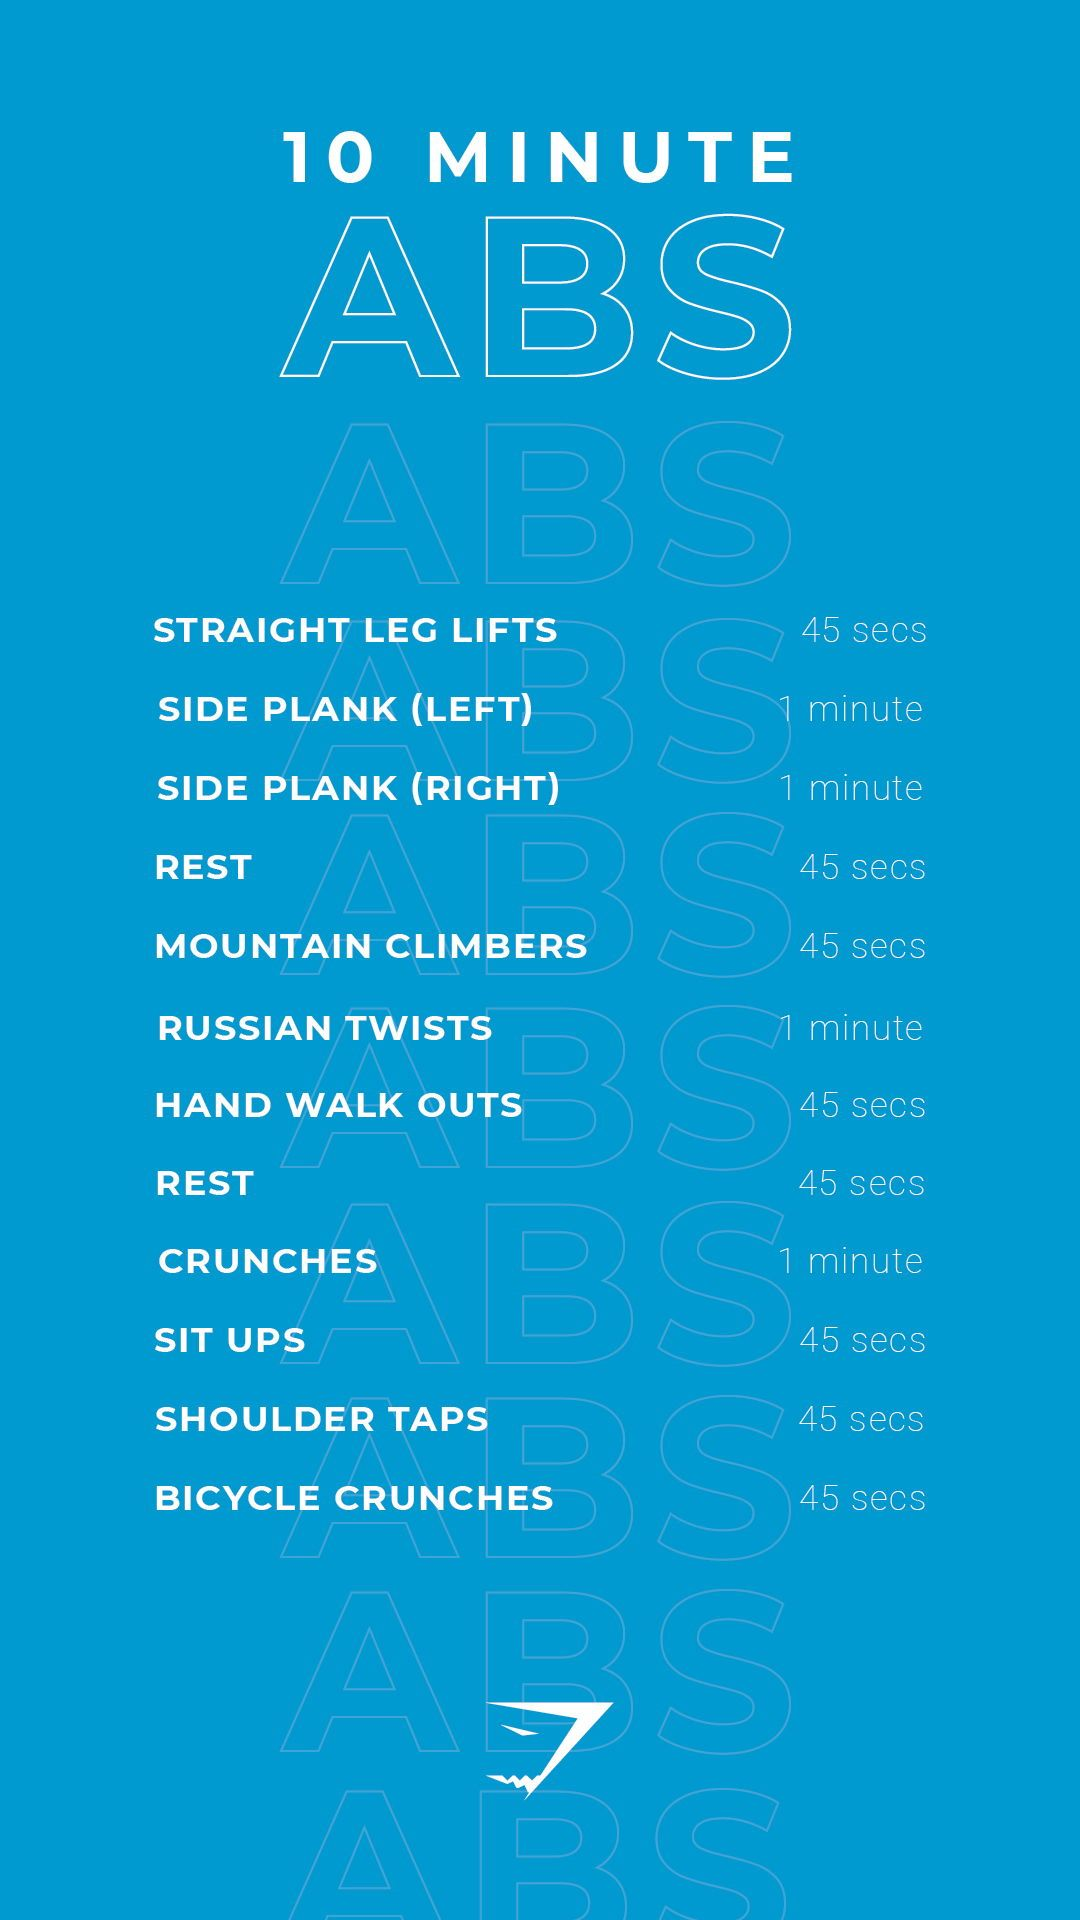 10 Minute Abs! Theres no excuses for missing your workout, with these quick and easy 10 minute exercises. It can be completed at home or at the gym. Let's smash those fitness targets, together! #Gymshark #Workout #Fitness #Gym #Challenge #Exercise #cheerworkouts